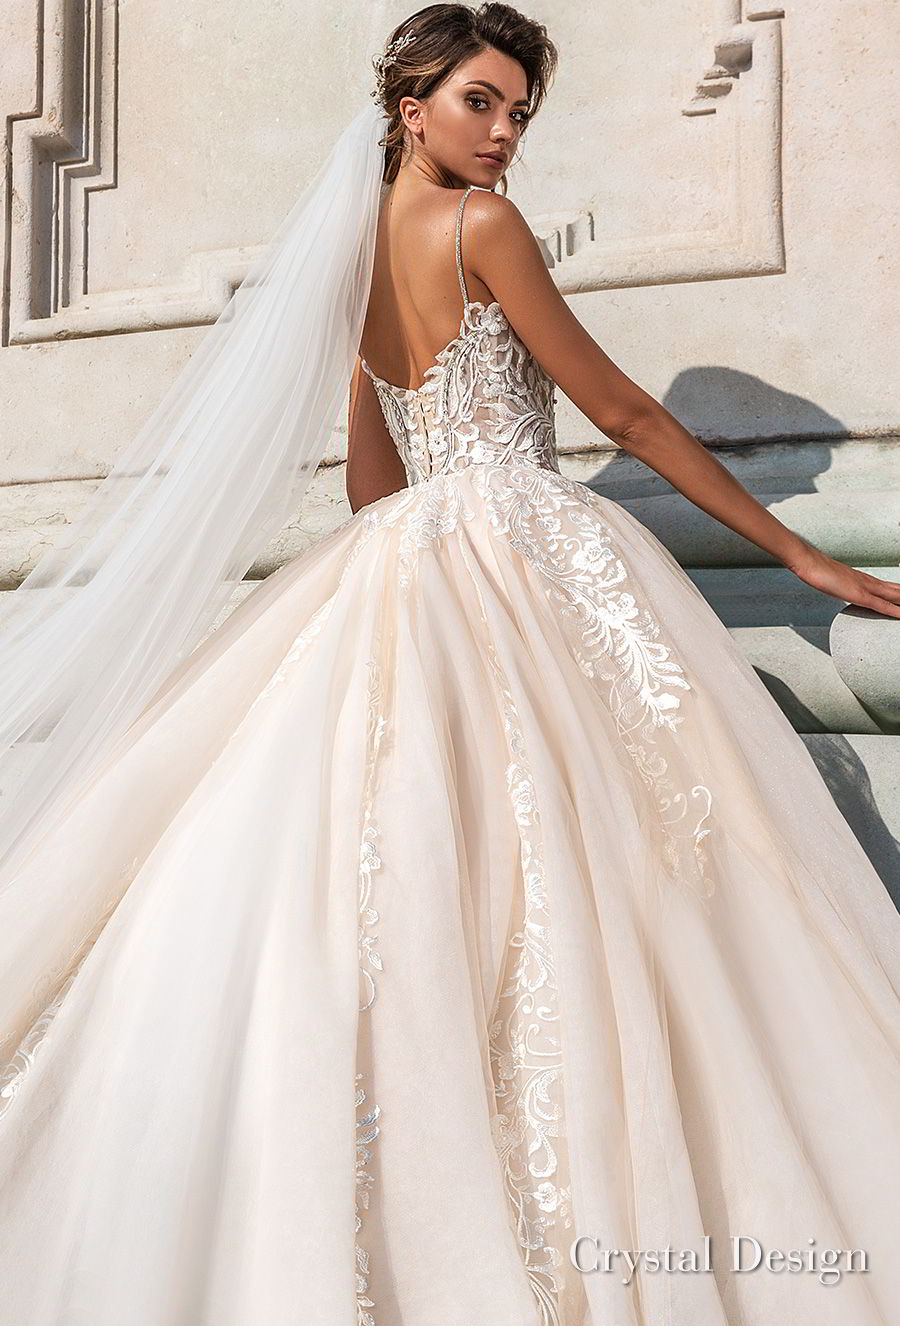 crystal design 2018 spaghetti strap sweetheart neckline heavily embellished bodice romantic ivory ball gown wedding dress chapel train (carol) zbv